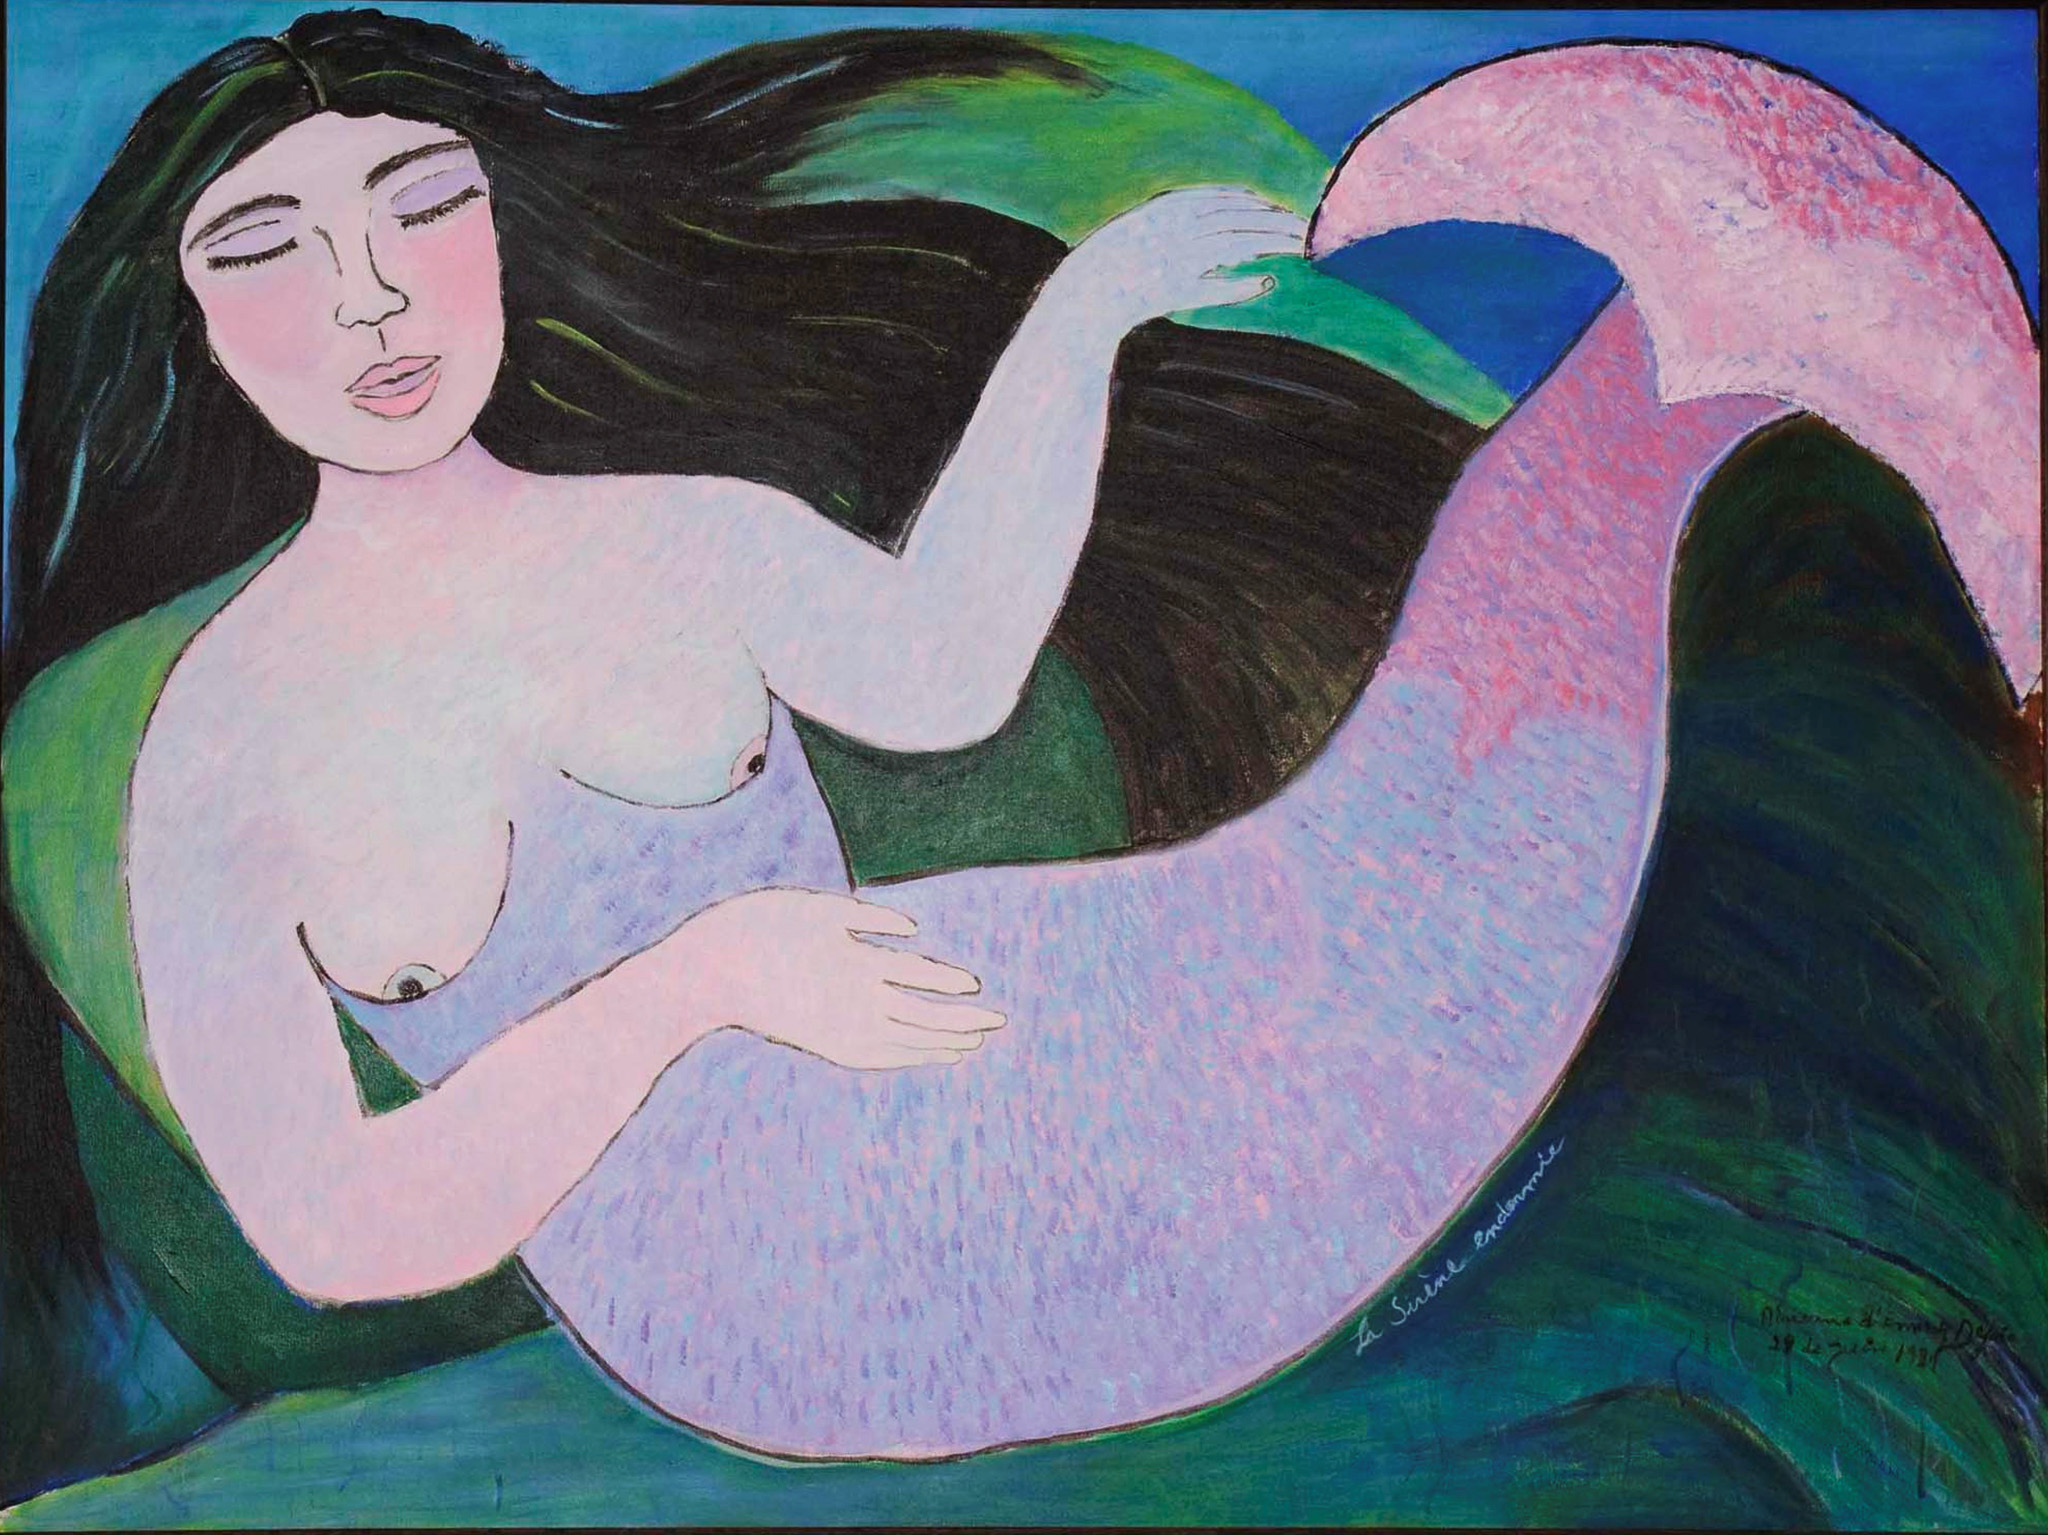 La Sirène Endormie (sleeping mermaid), 1987